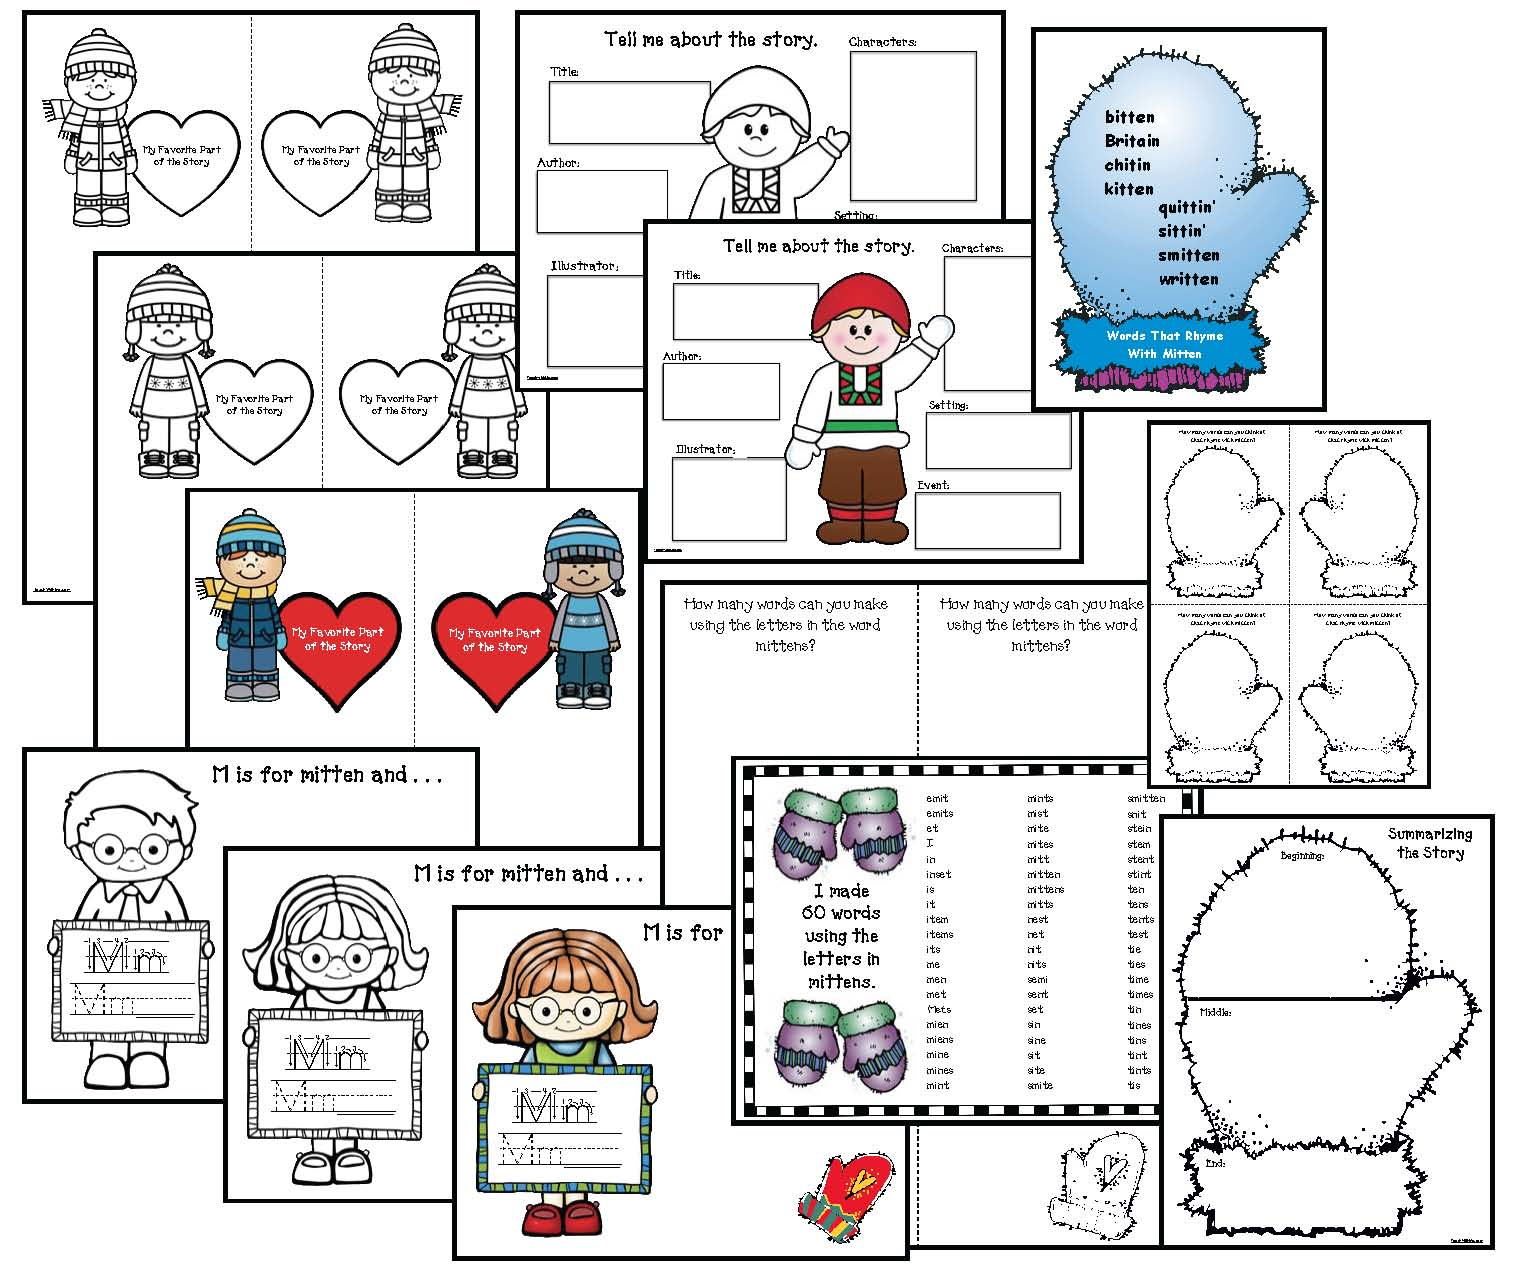 Activities for the mitten by jan brett, mitten activities, mitten crafts, literacy packet for the mitten, common core mitten